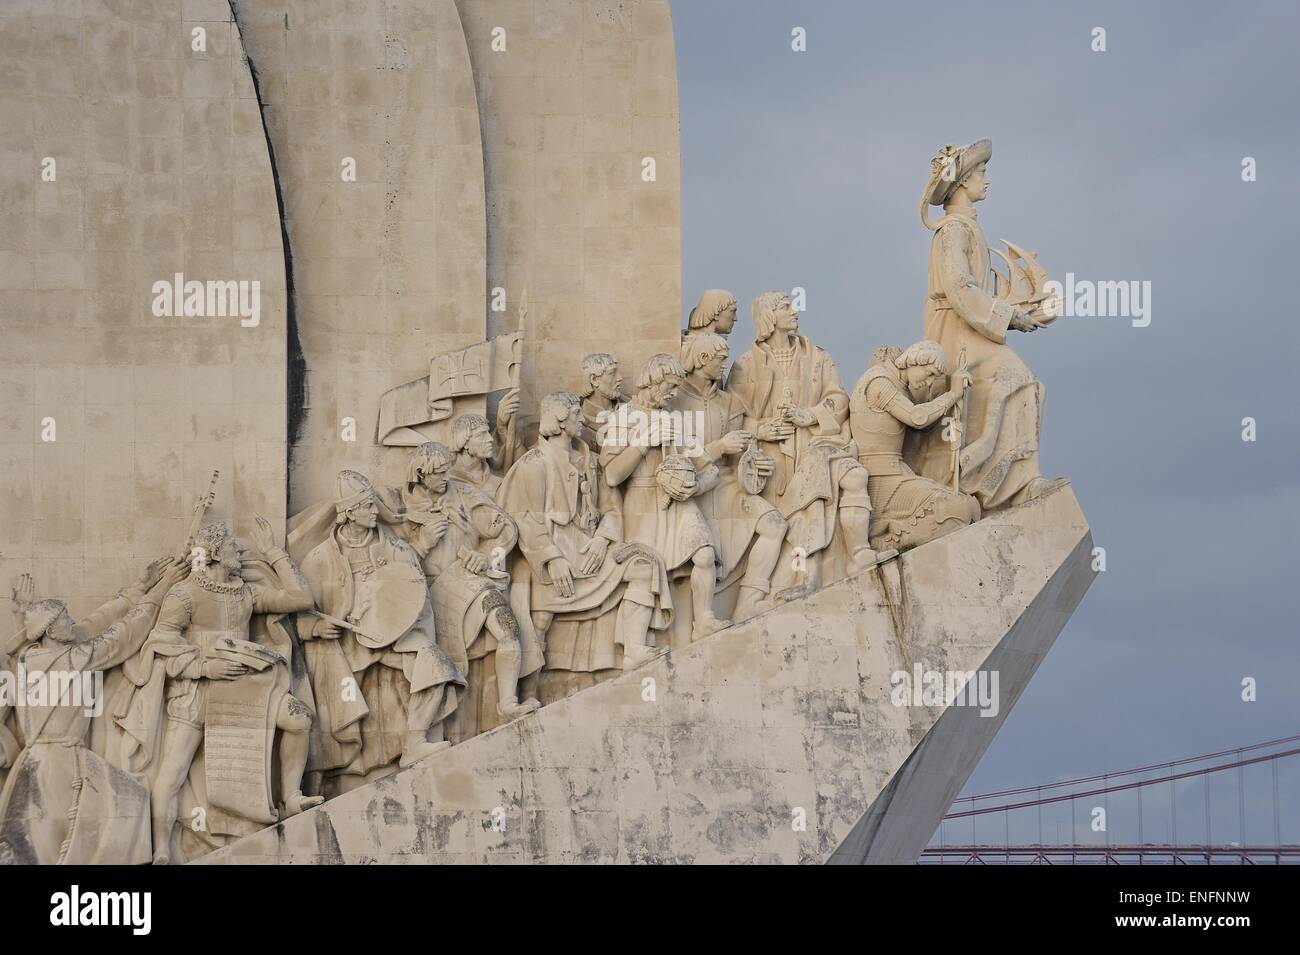 Padrao dos Descobrimentos, Monument to the Discoveries, sculpture with important figures of Portuguese seafaring - Stock Image